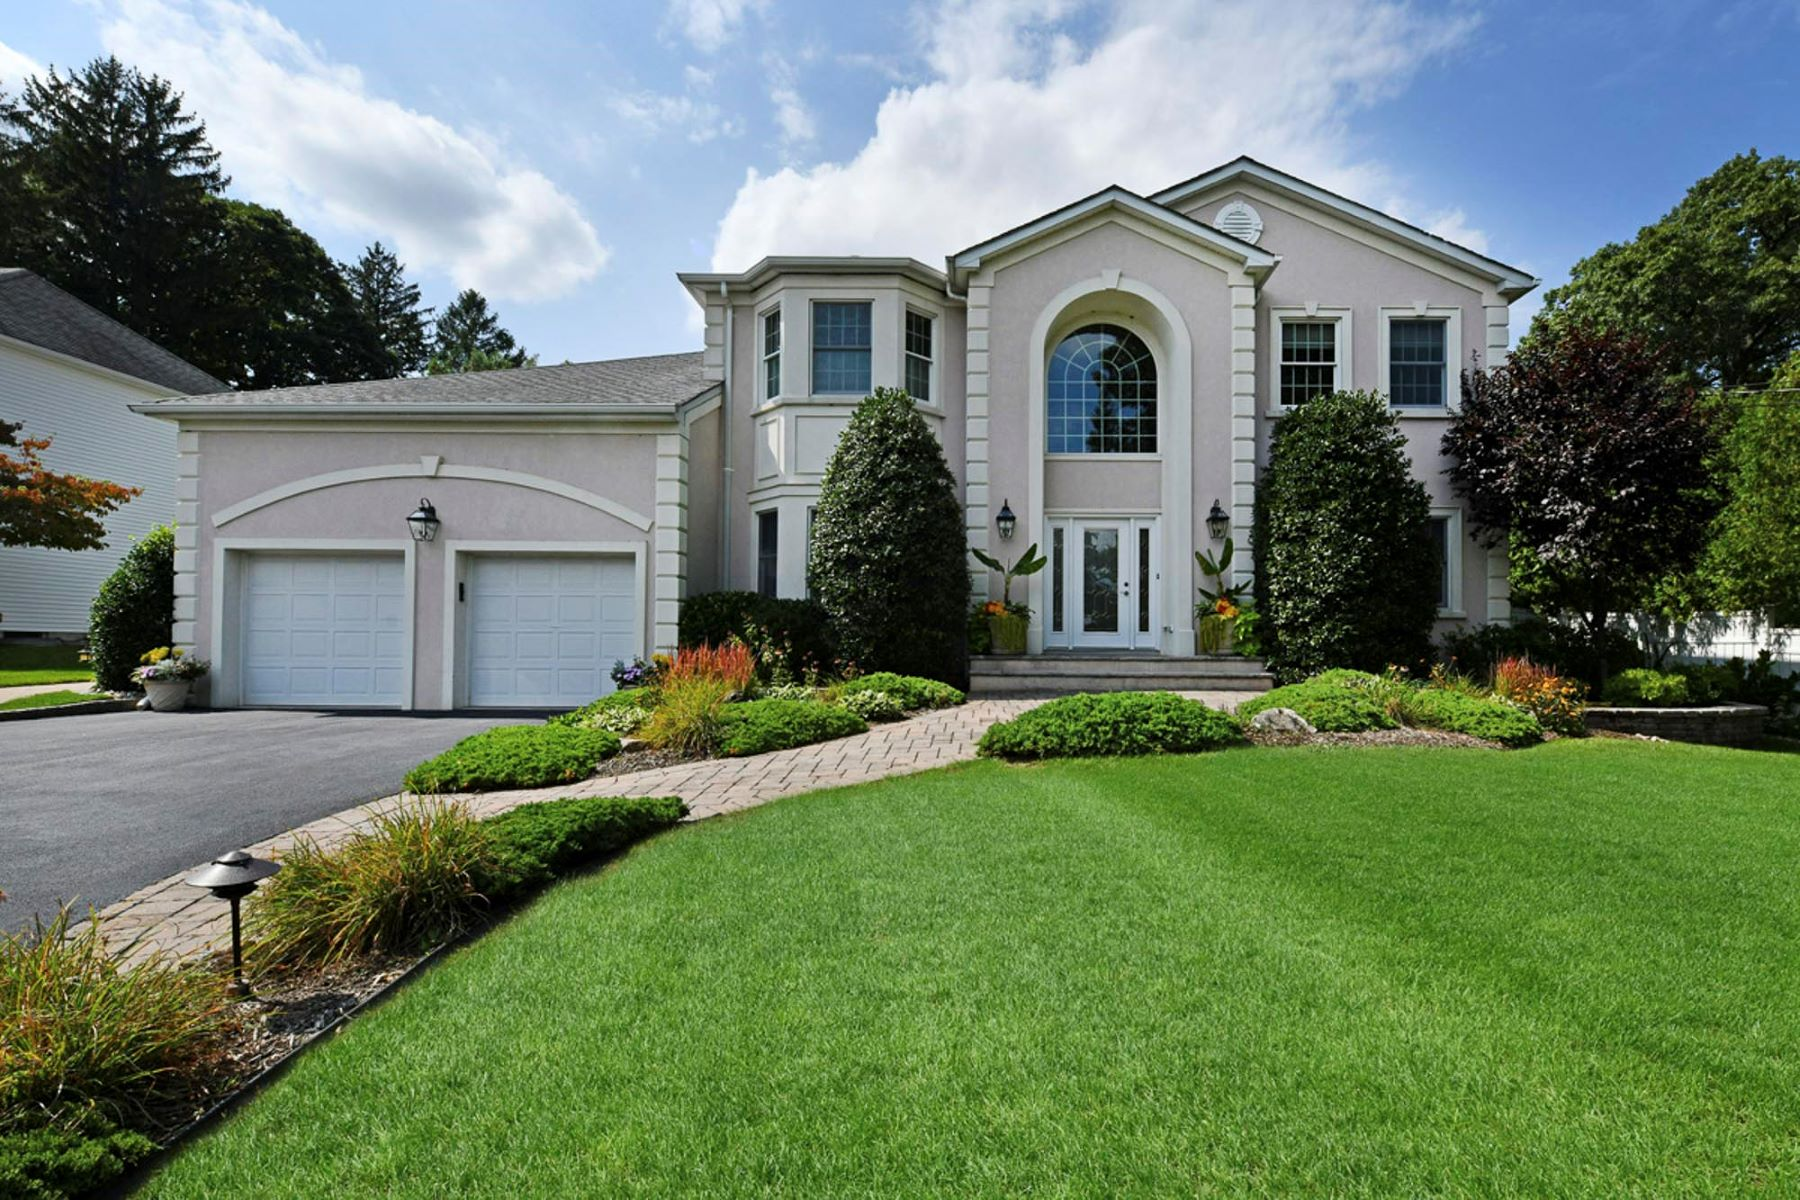 Single Family Homes for Sale at Exquisite Home 570 Van Emburgh Ave Township Of Washington, New Jersey 07676 United States